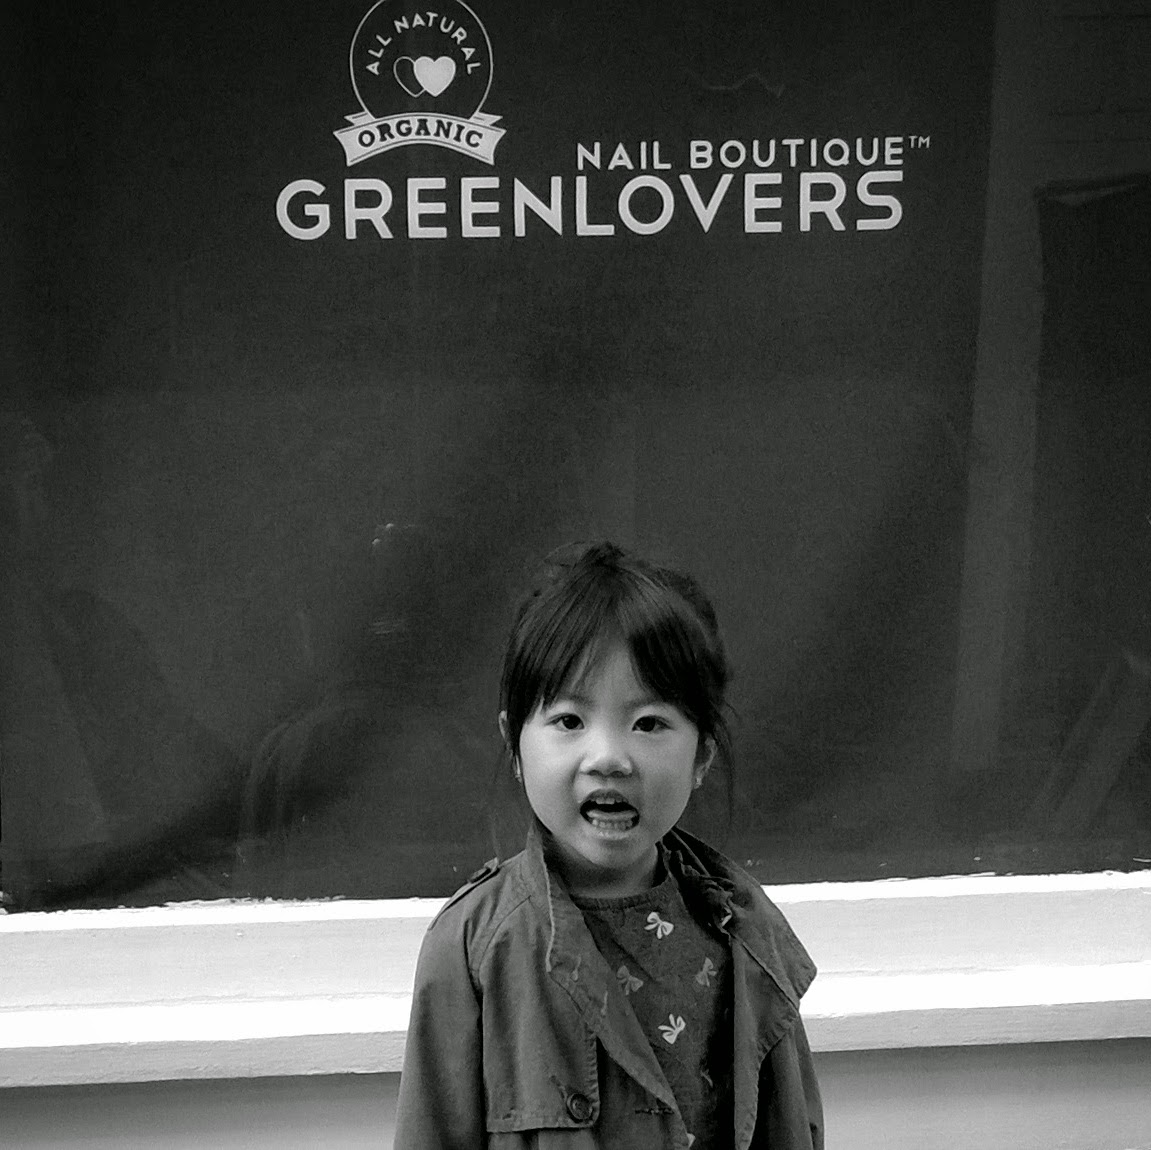 Green Lovers Nail Boutique